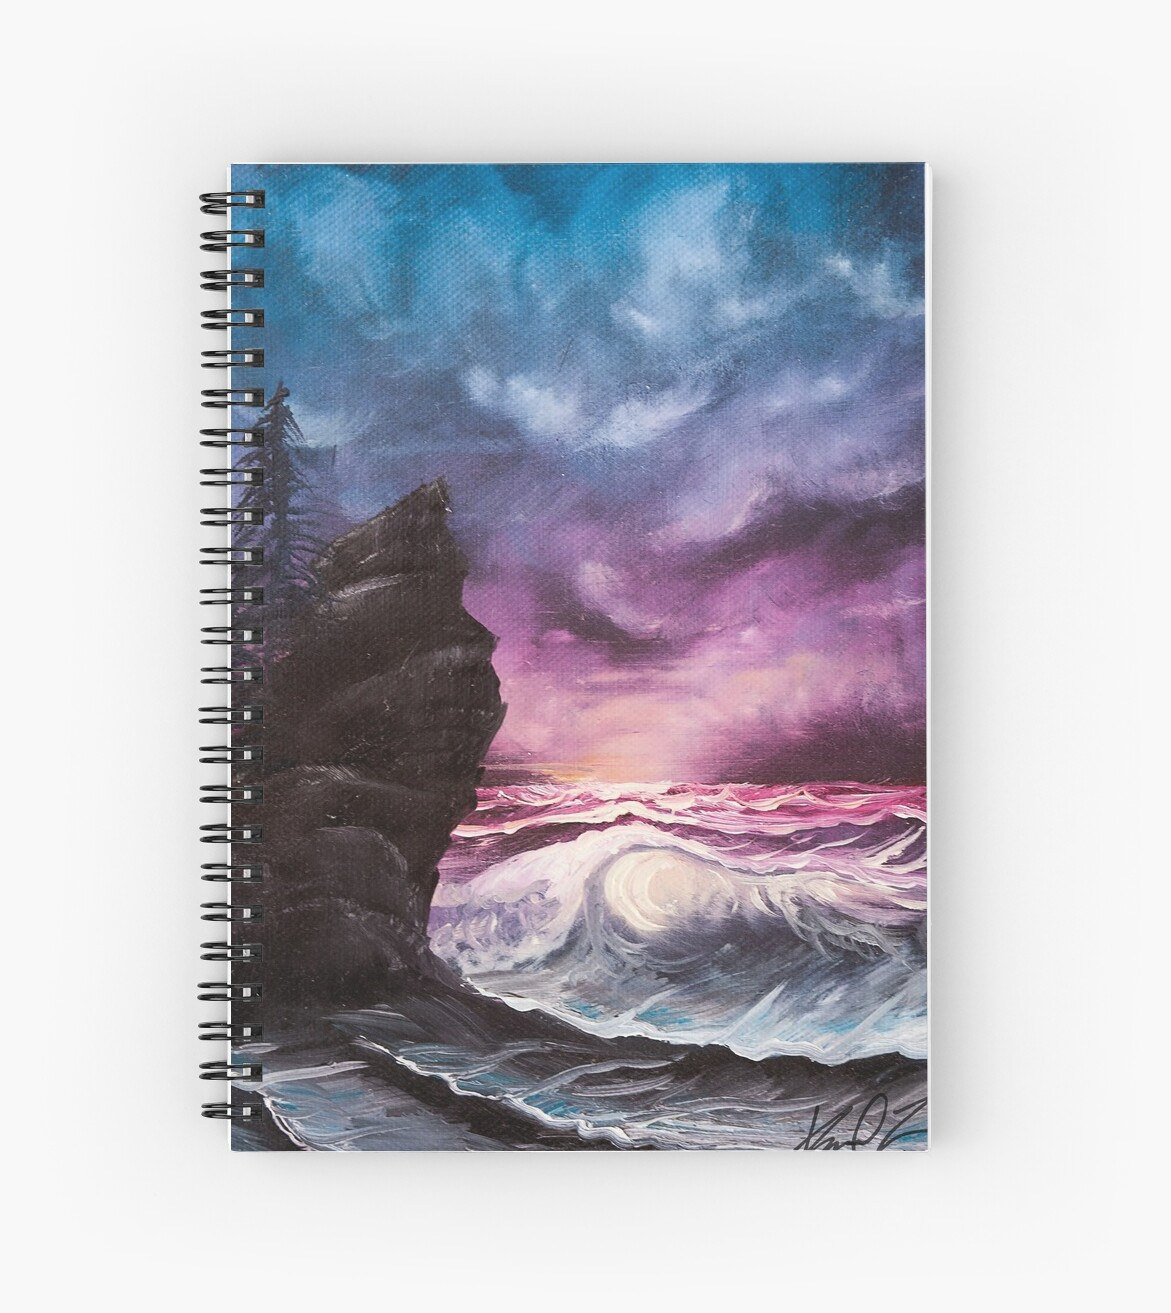 Ocean Sunset Bob Ross Style Seascape Painting Spiral Notebooks By